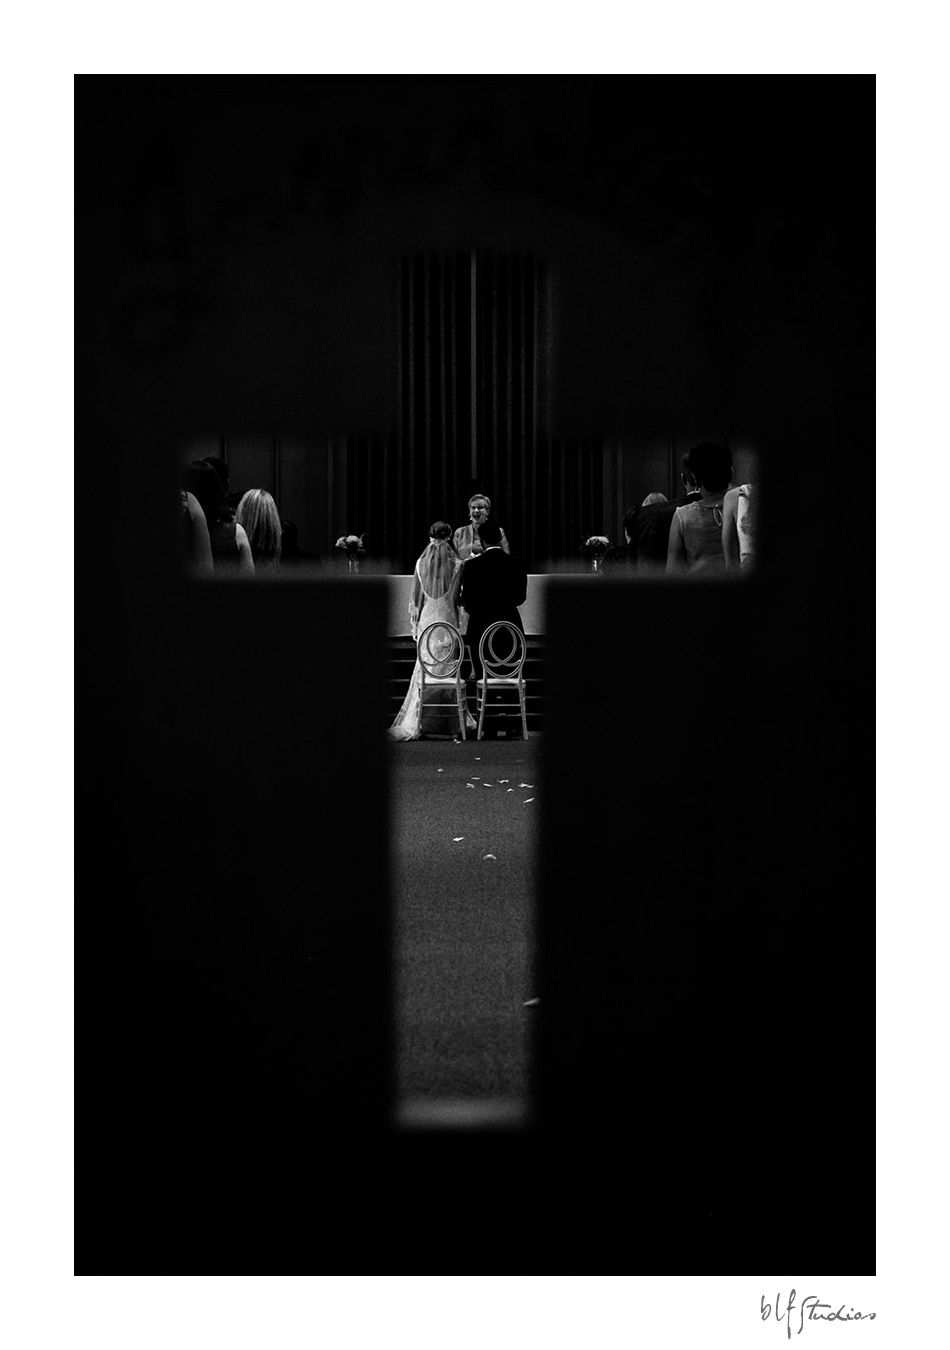 0005-winnipeg-stbonifacegolfcourse-wedding-blfstudios.jpg